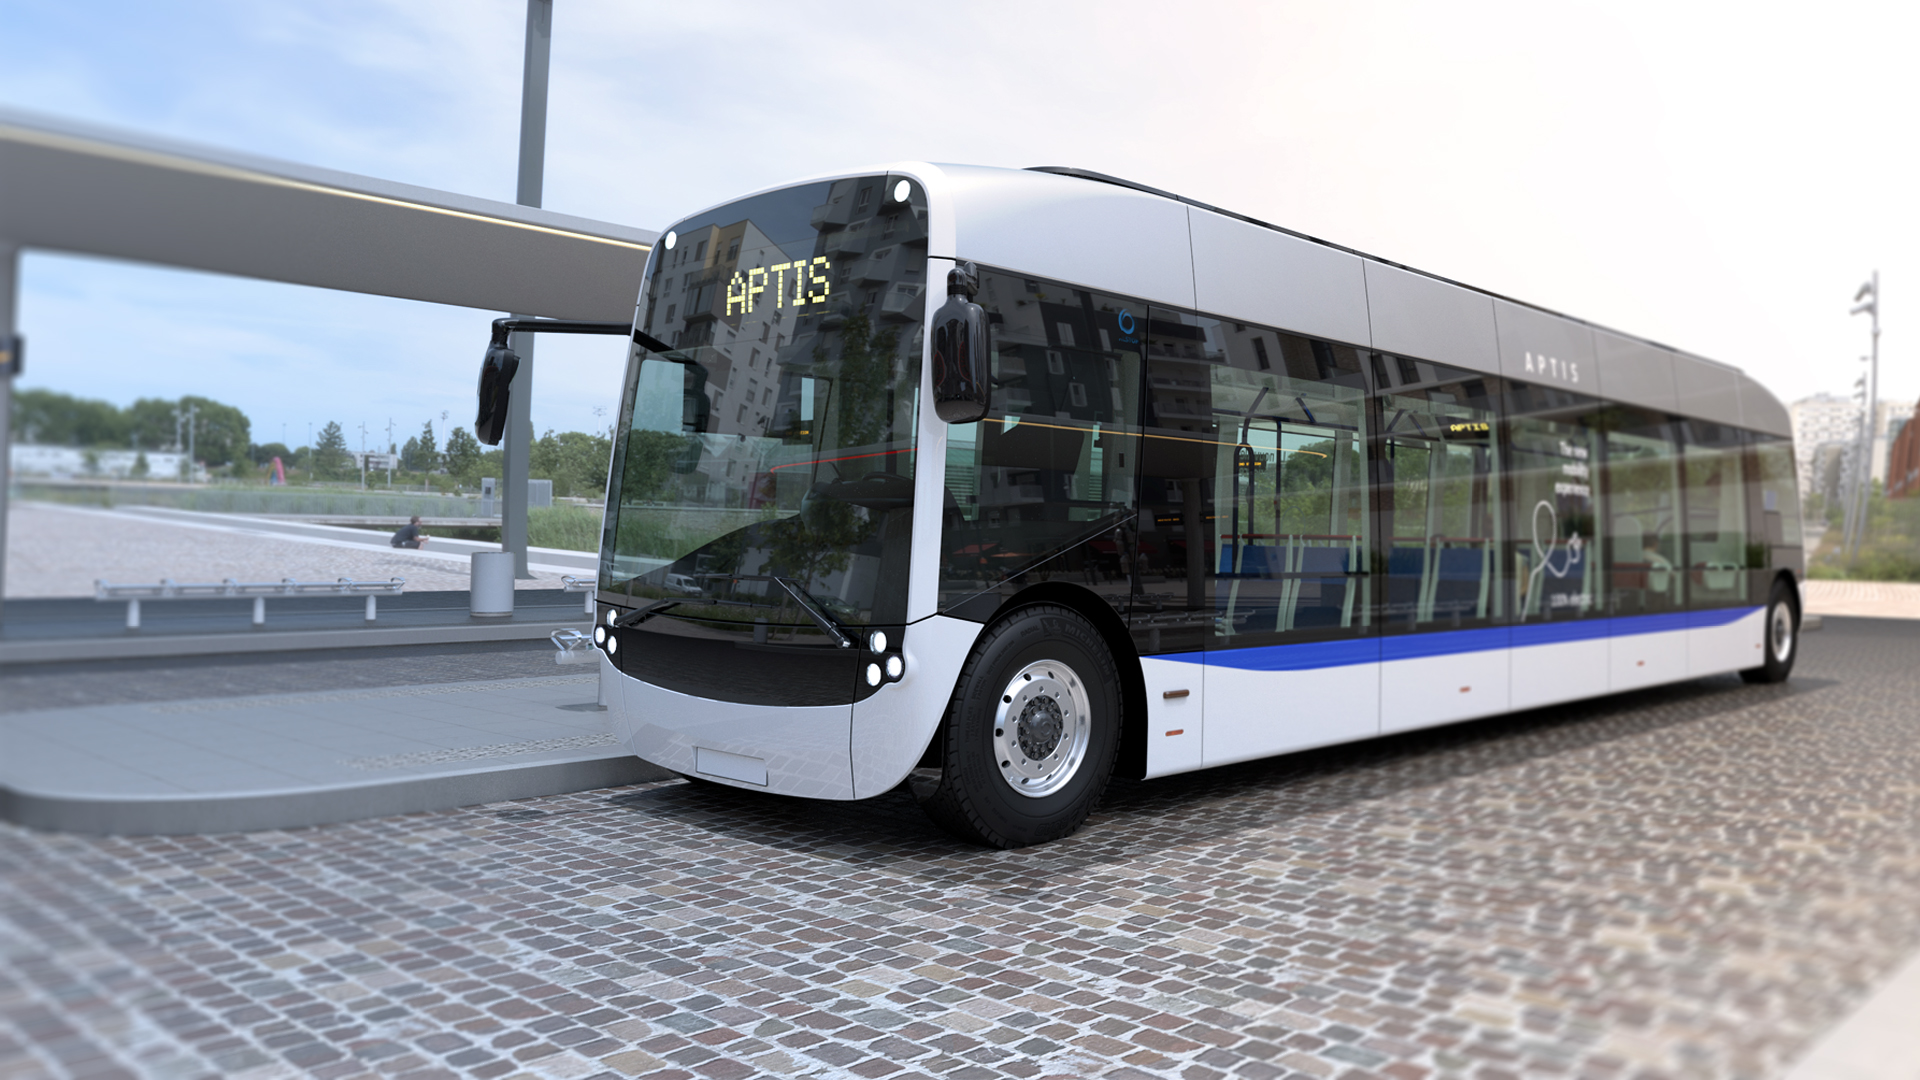 Collaboration to supply batteries for Aptis electric buses